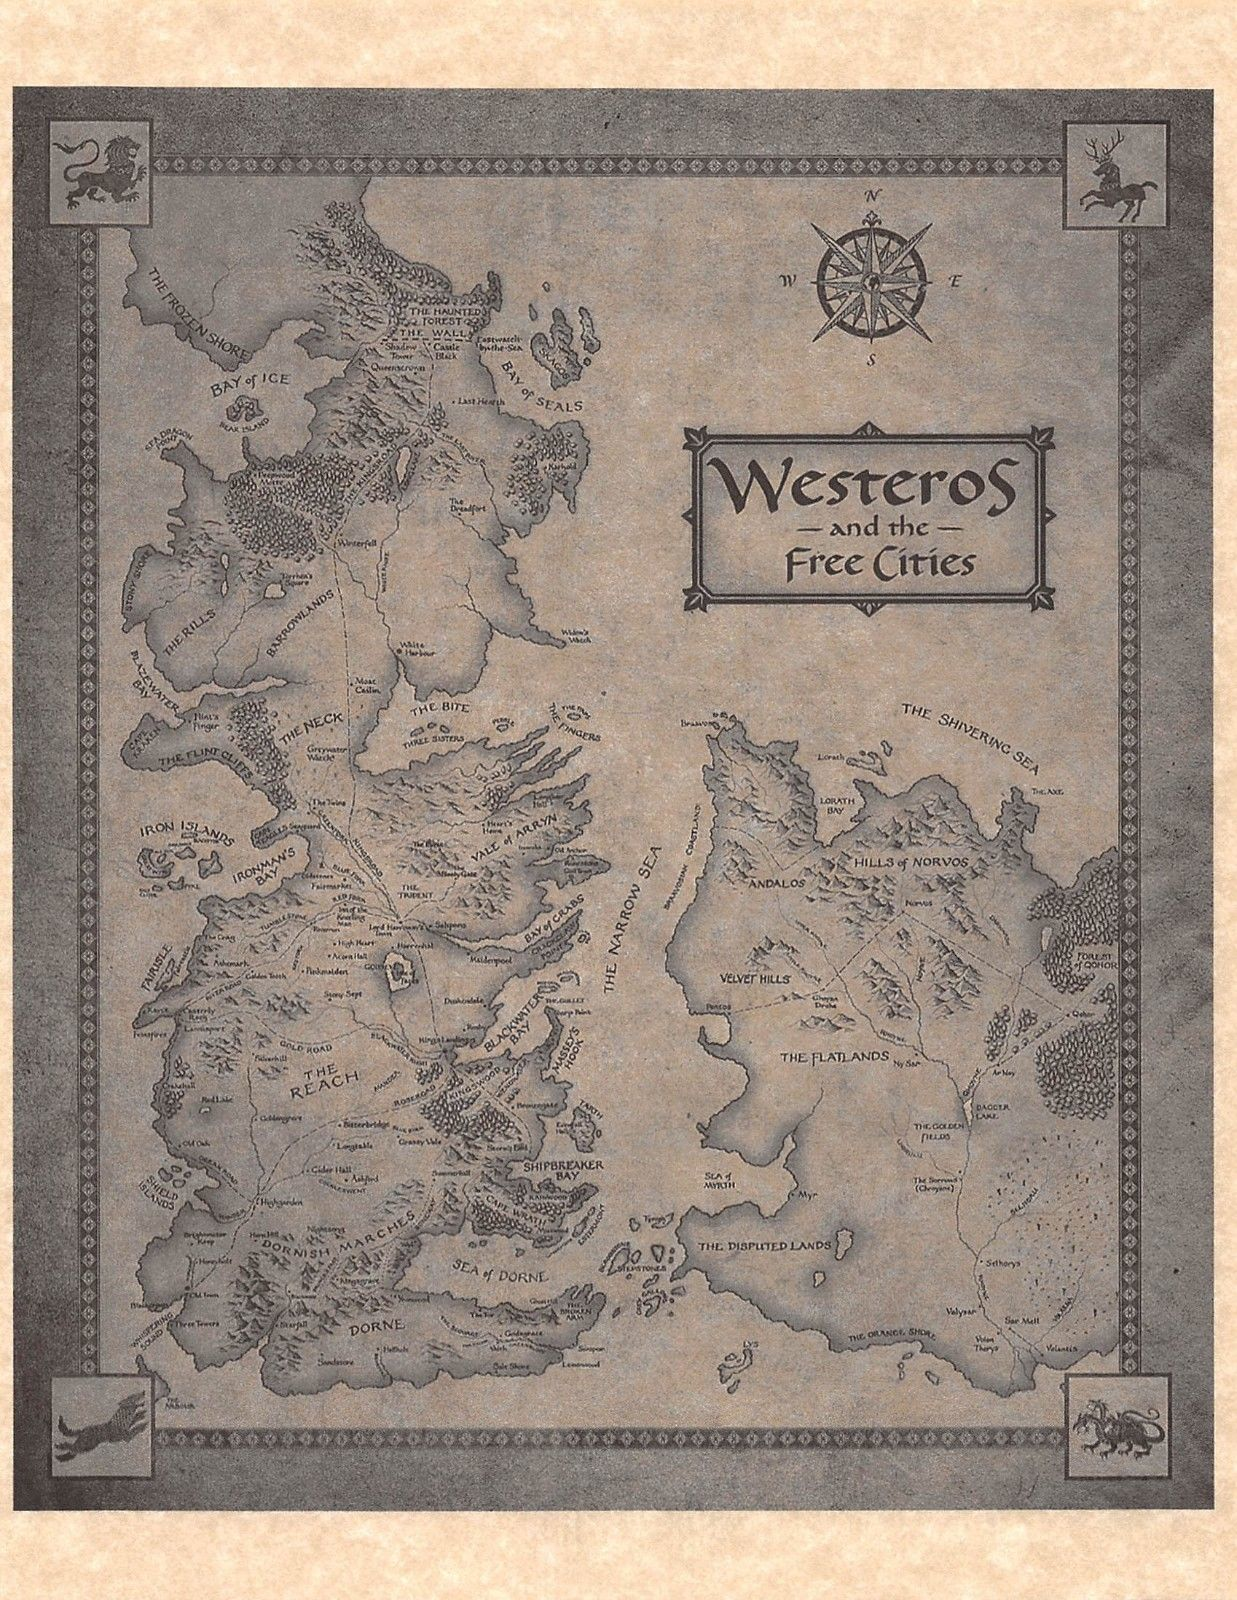 Game Of Thrones Map Of Westeros And The Free and 50 similar items Game Of Thrones Maps Free on game of thrones book free, game of thrones chart, rome map free, map westeros and the city free, game of thrones maps and families, game of thrones the vale, game of thrones pentos, united states map free, game of thrones art free, game of thrones house arryn sigil, game of thrones battle, game of thrones maps pdf, game of thrones diagram, game of thrones maps and characters, game of thrones family tree house,